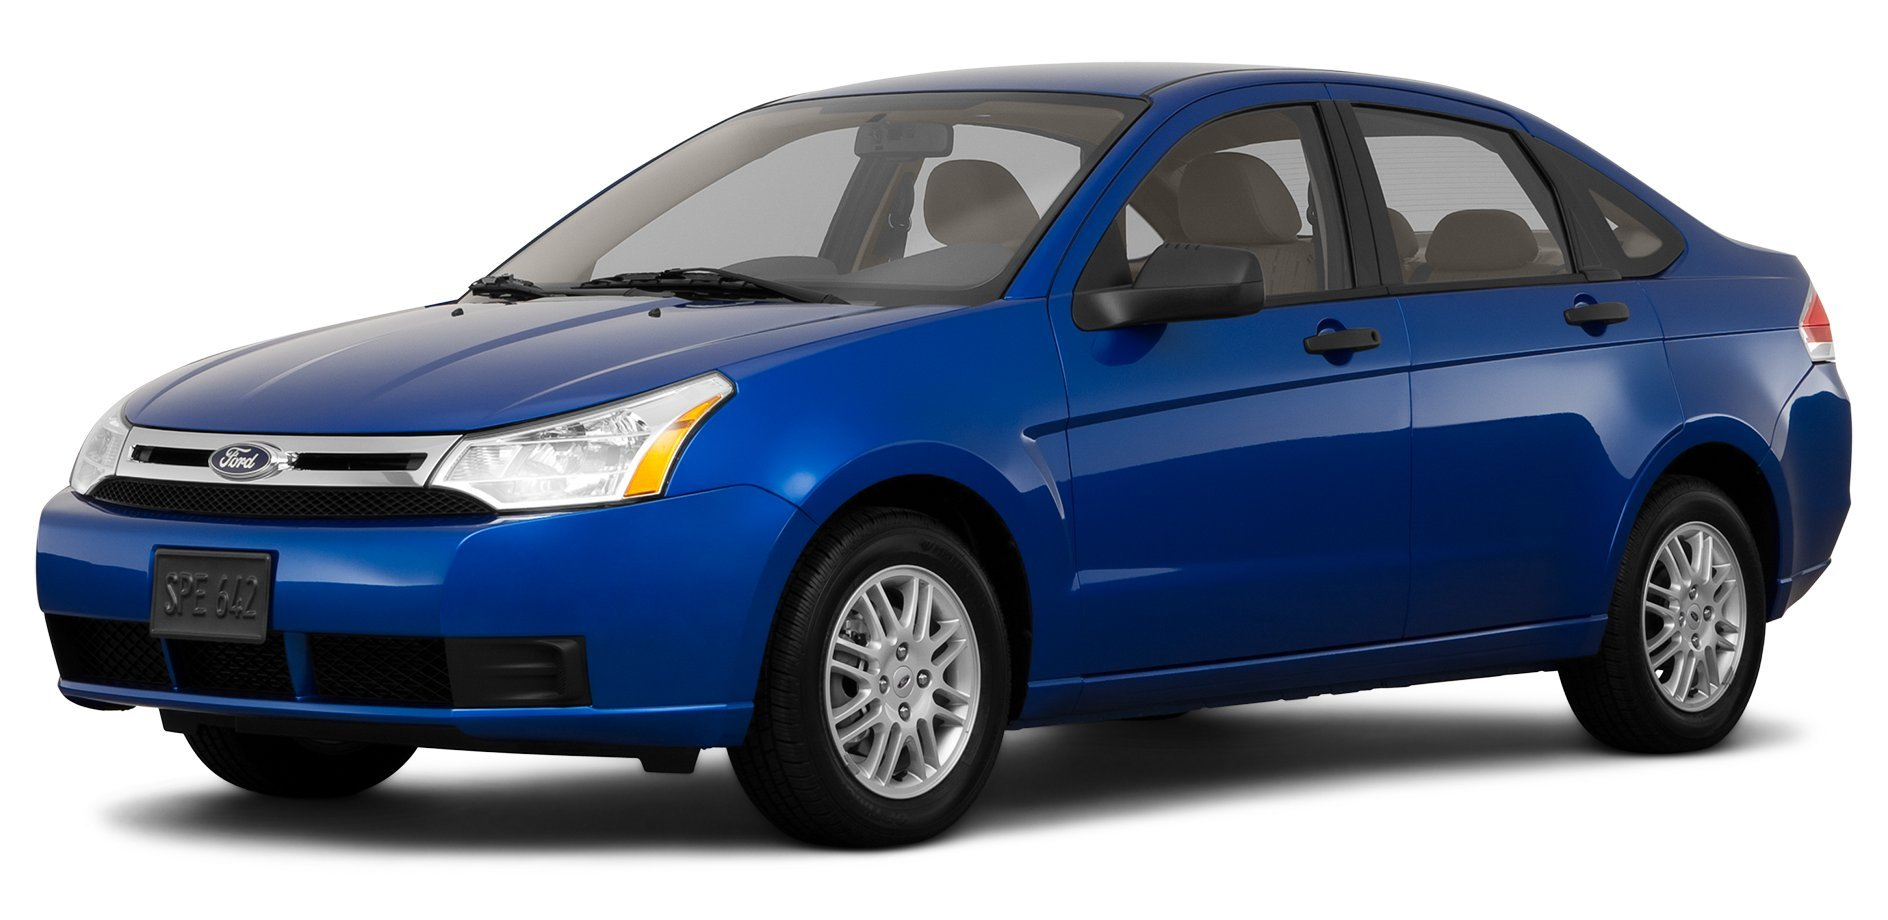 2011 ford focus reviews images and specs vehicles. Black Bedroom Furniture Sets. Home Design Ideas